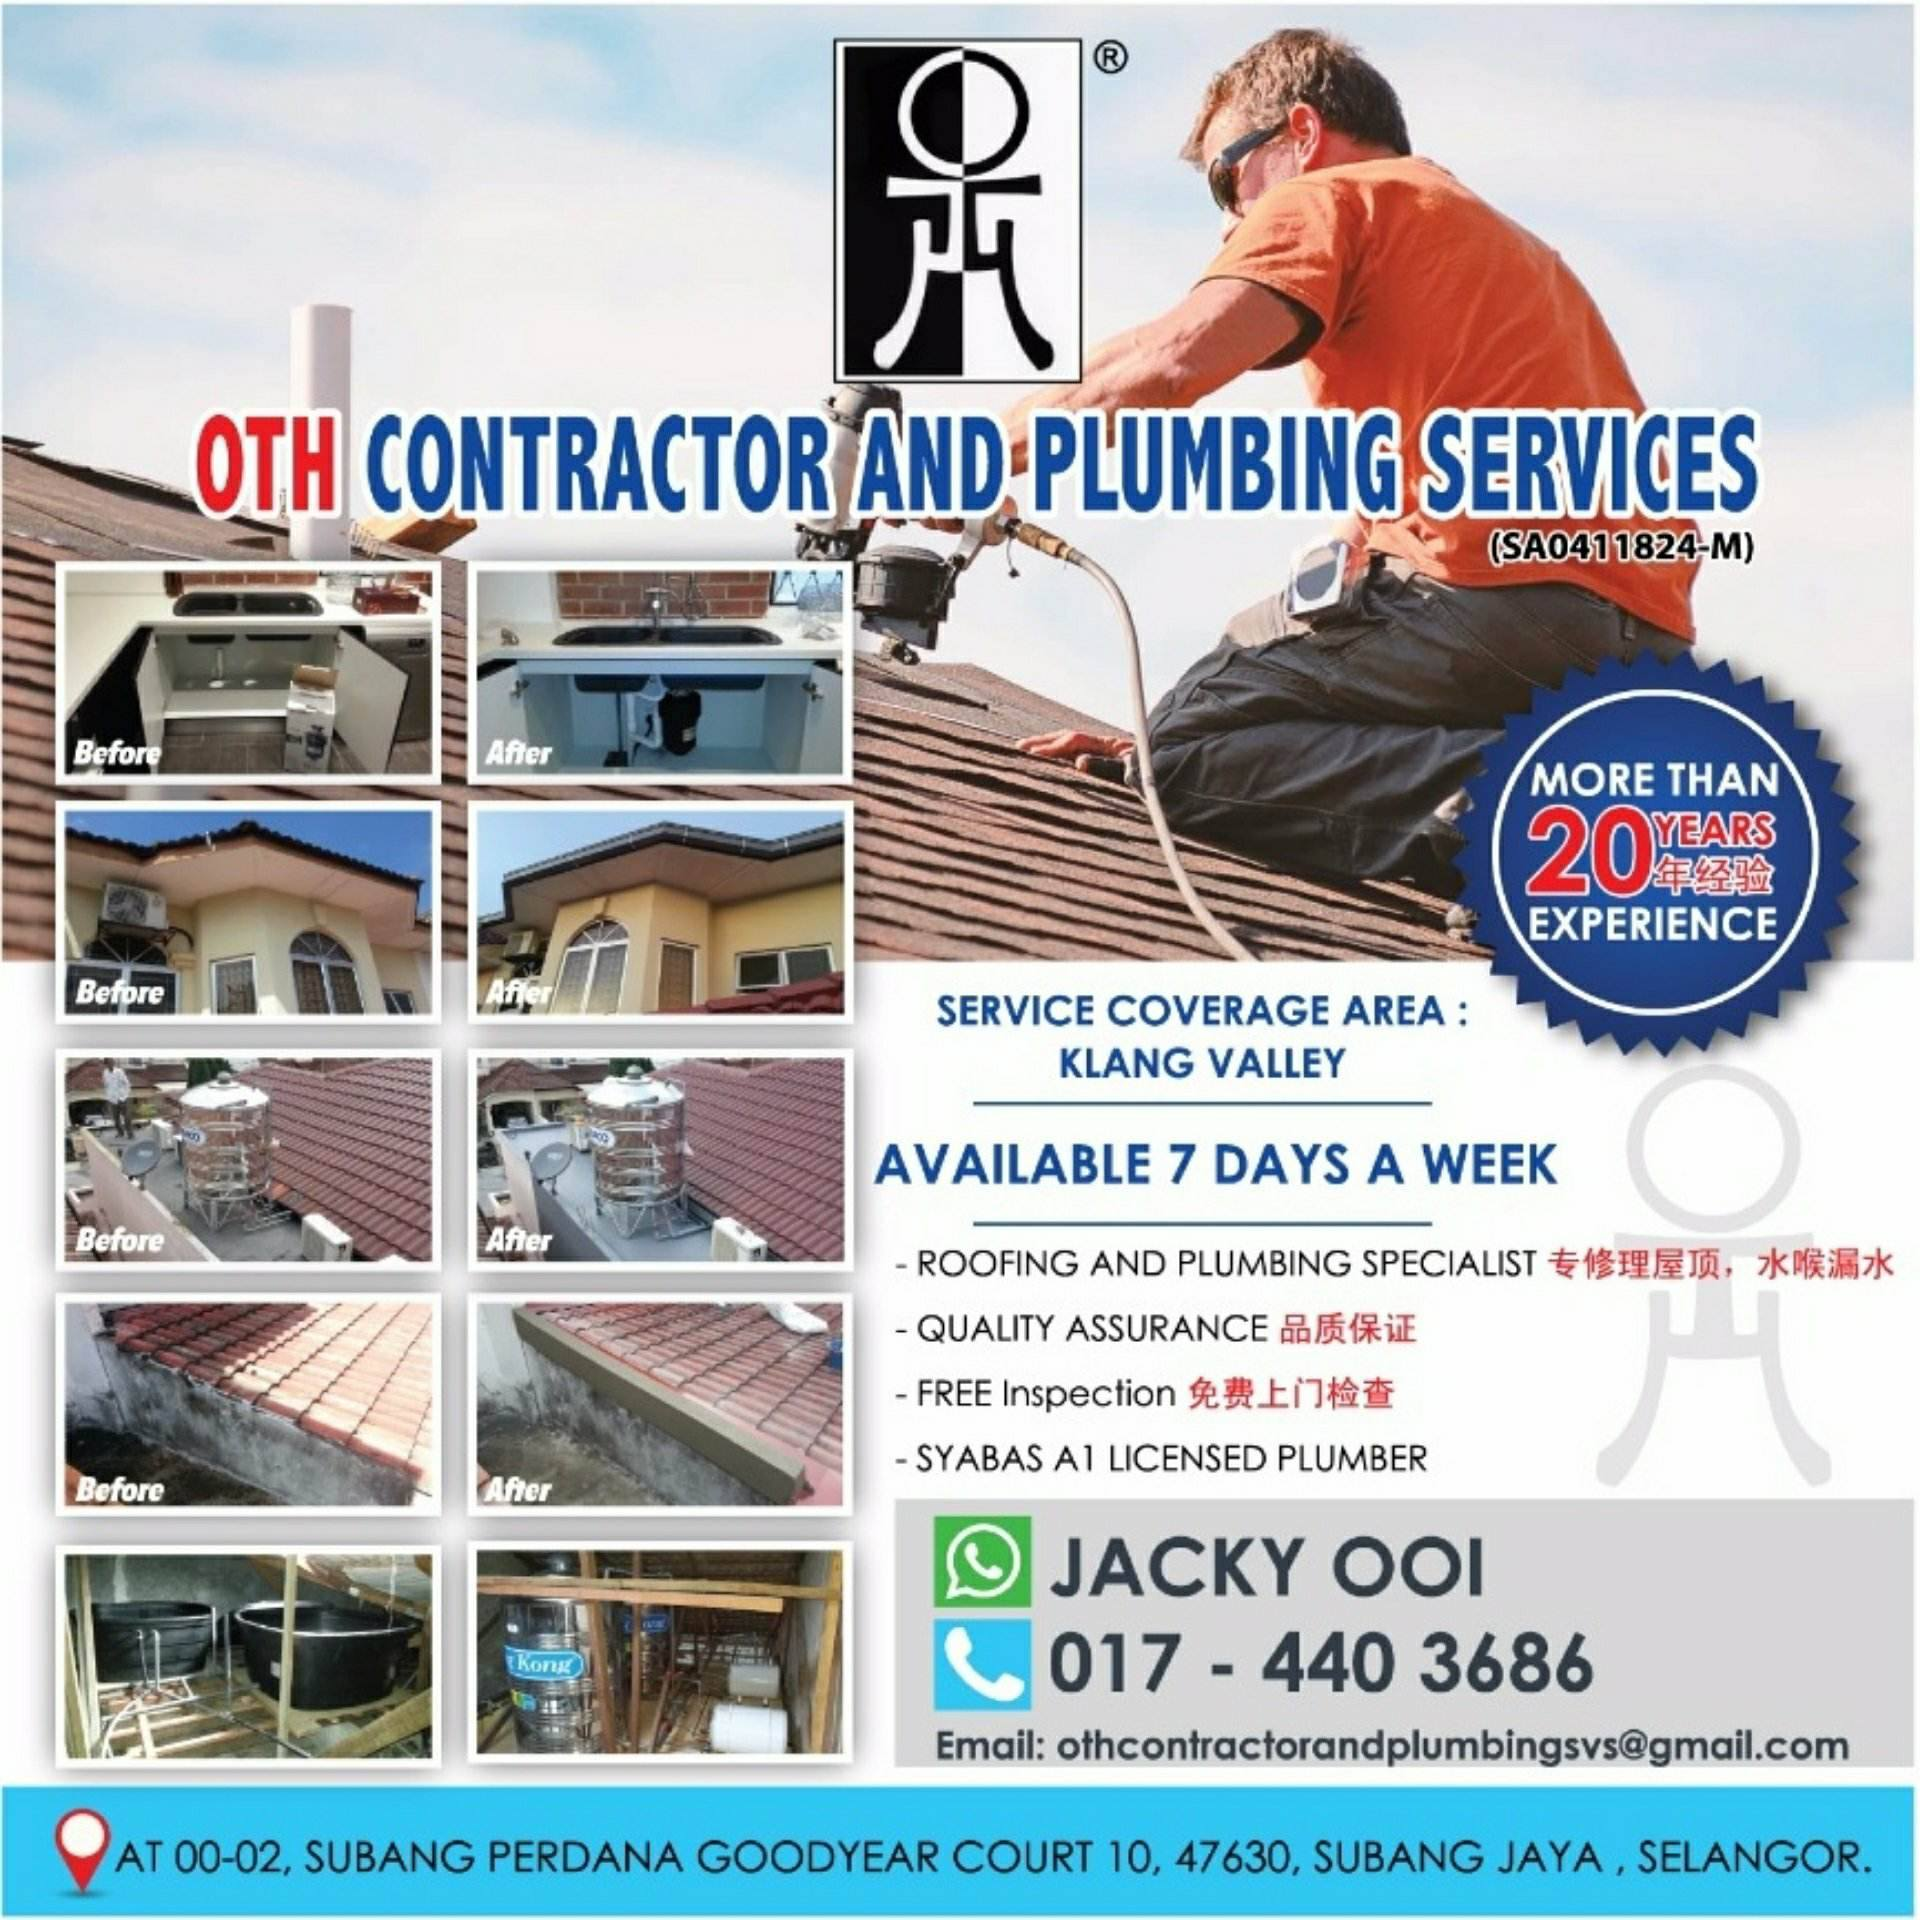 OTH CONTRACTOR AND PLUMBING SERVICES